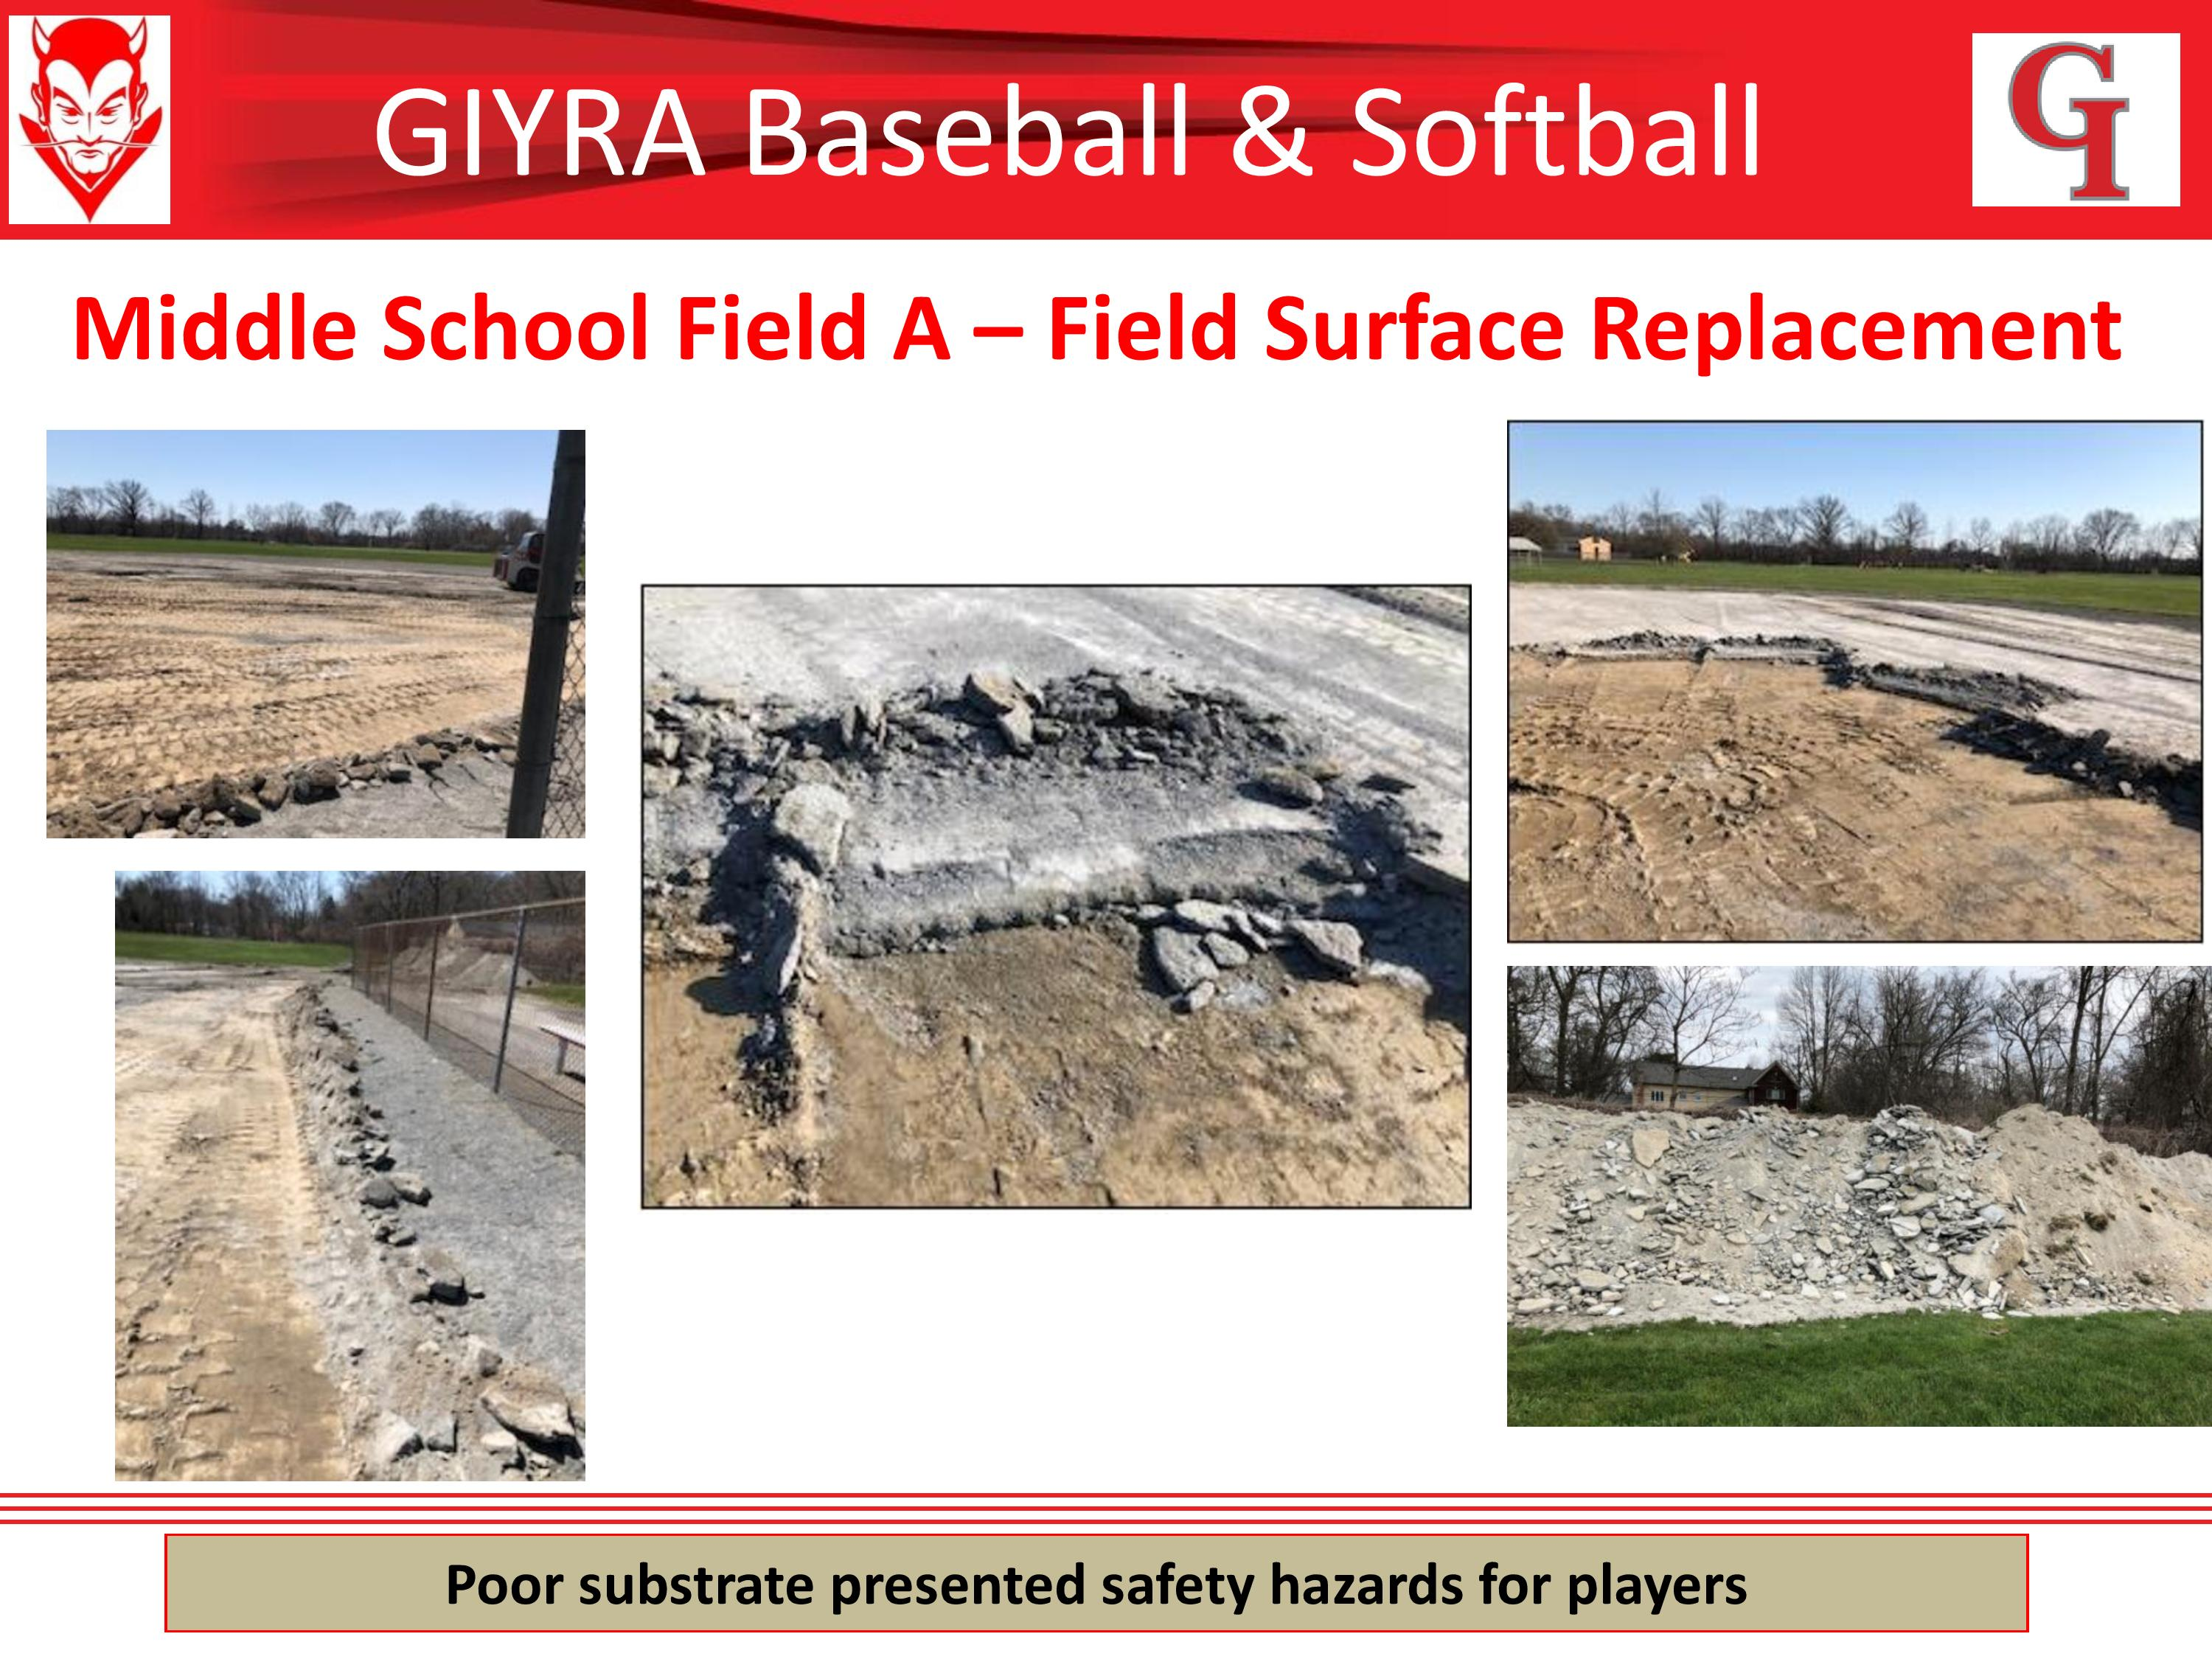 Middle School Field A Before